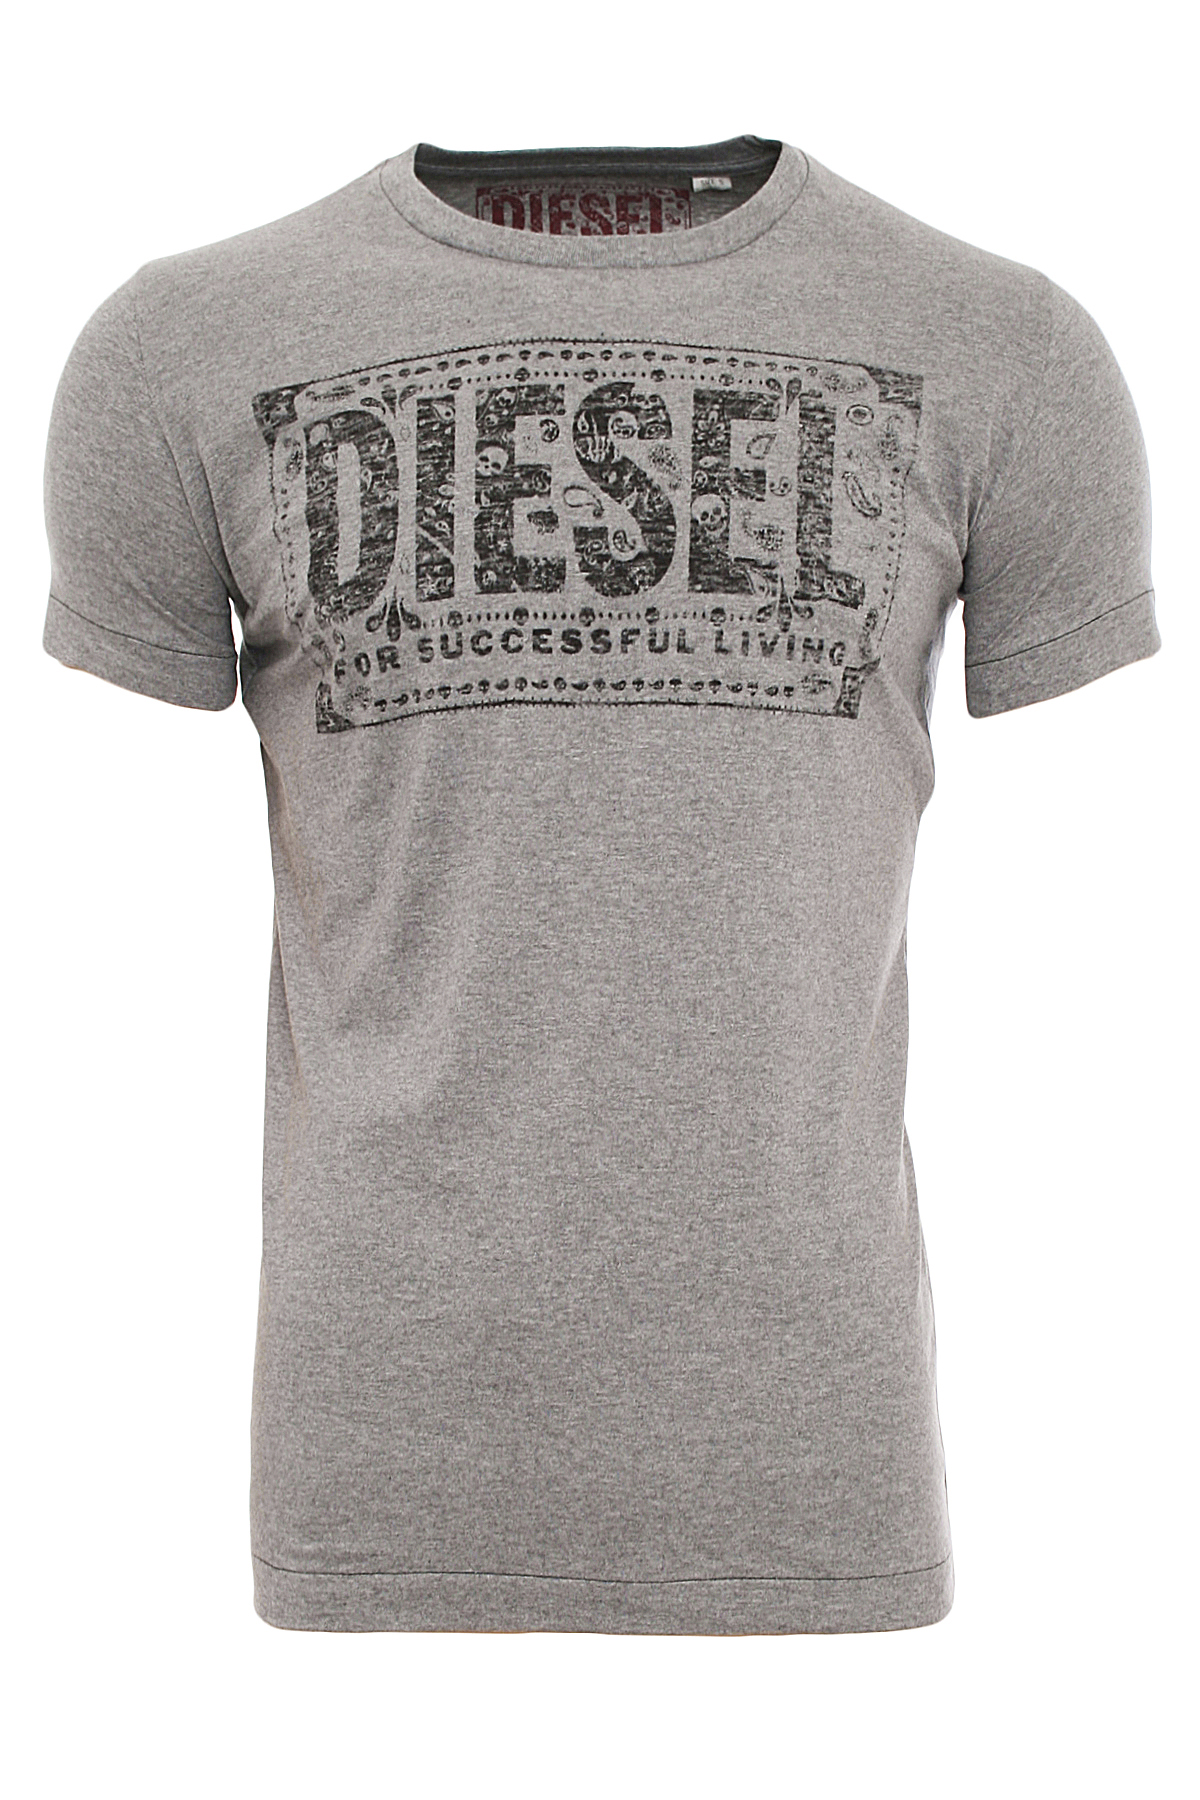 diesel t nuente rs herren kurzarm t shirt mit motiv 3. Black Bedroom Furniture Sets. Home Design Ideas